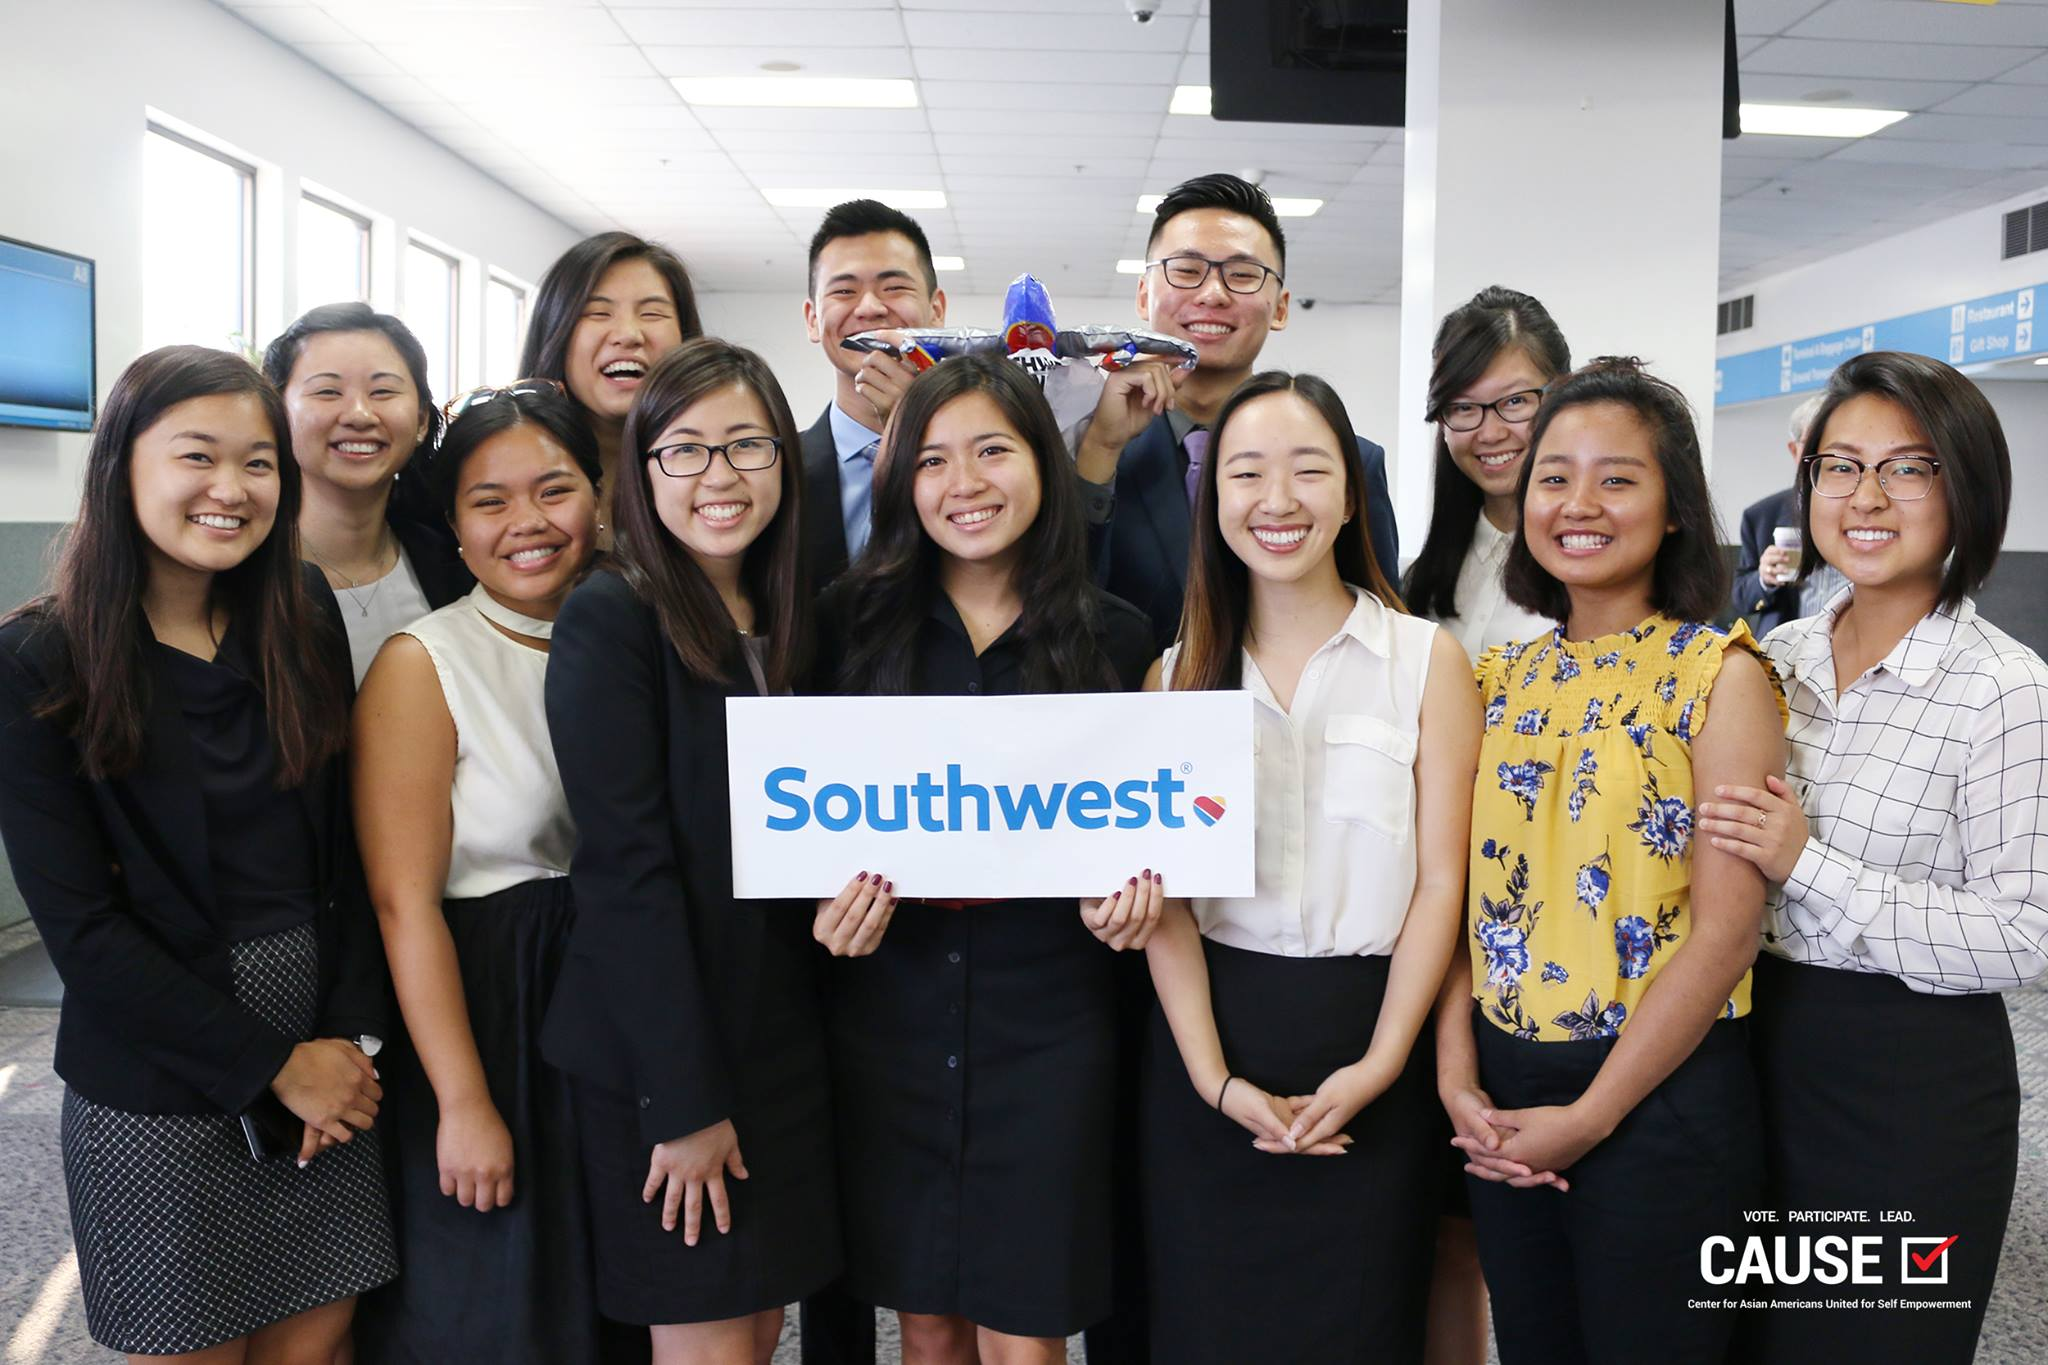 2017 CAUSE Leadership Academy holding a Southwest sign